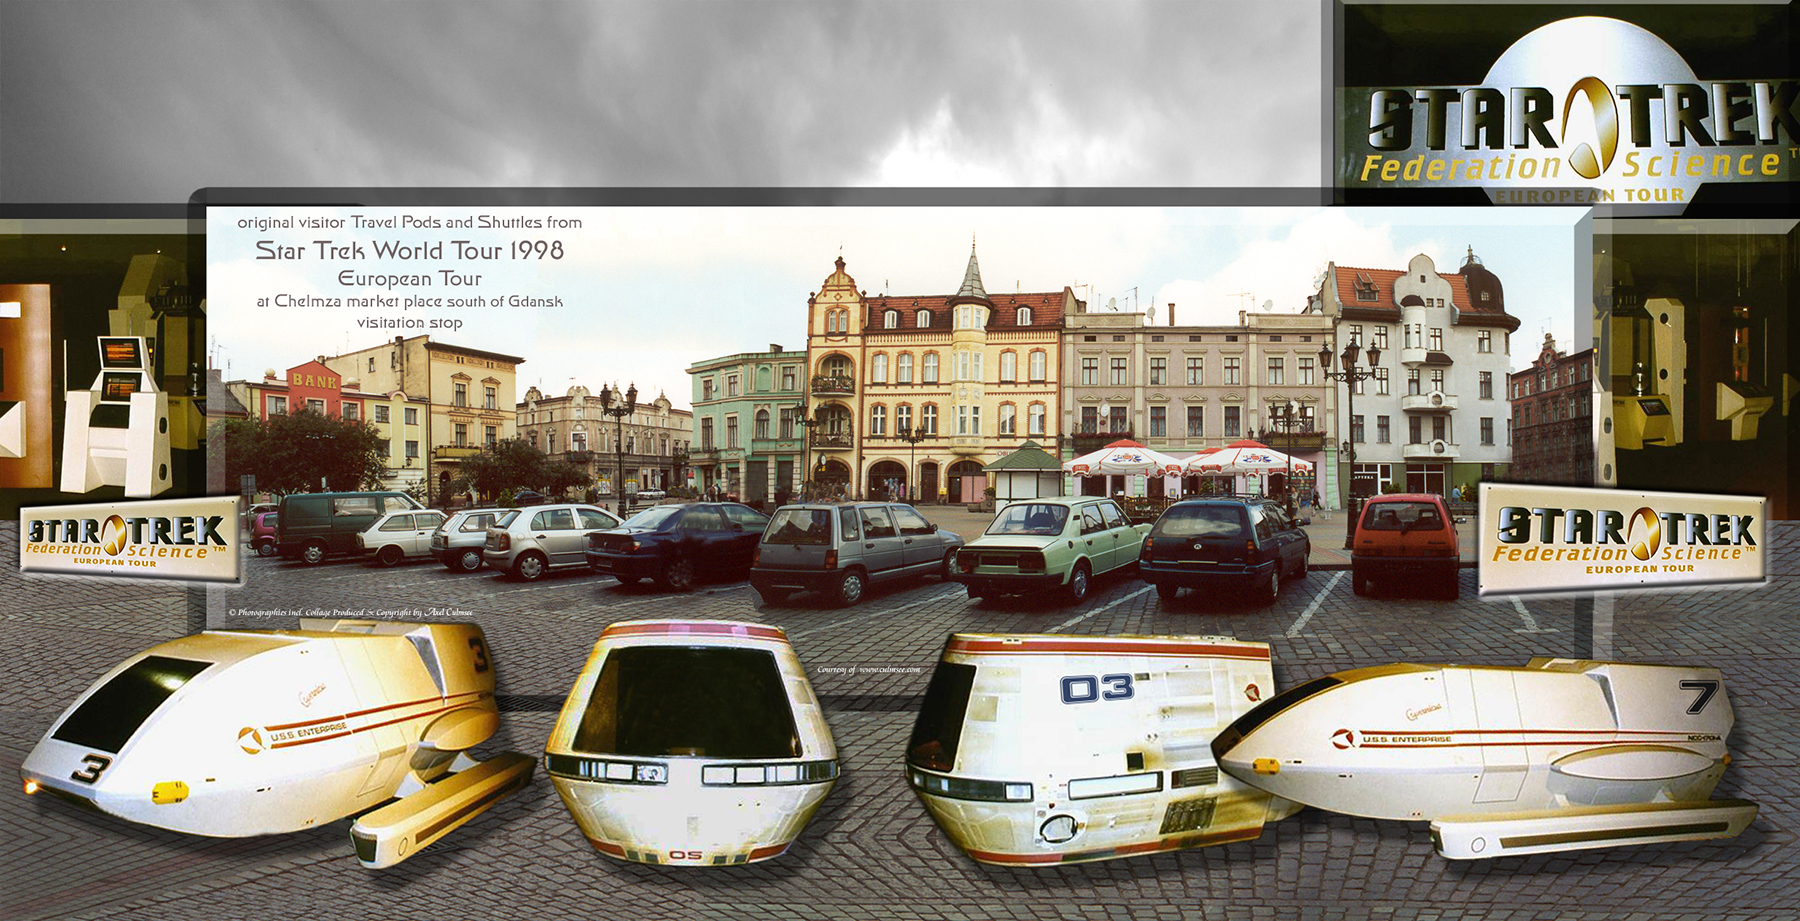 original visitor Travel Pods and Shuttles from Star Trek World Tour 1998 during European Tour at Chelmza market place south of Gdansk with visitation stop